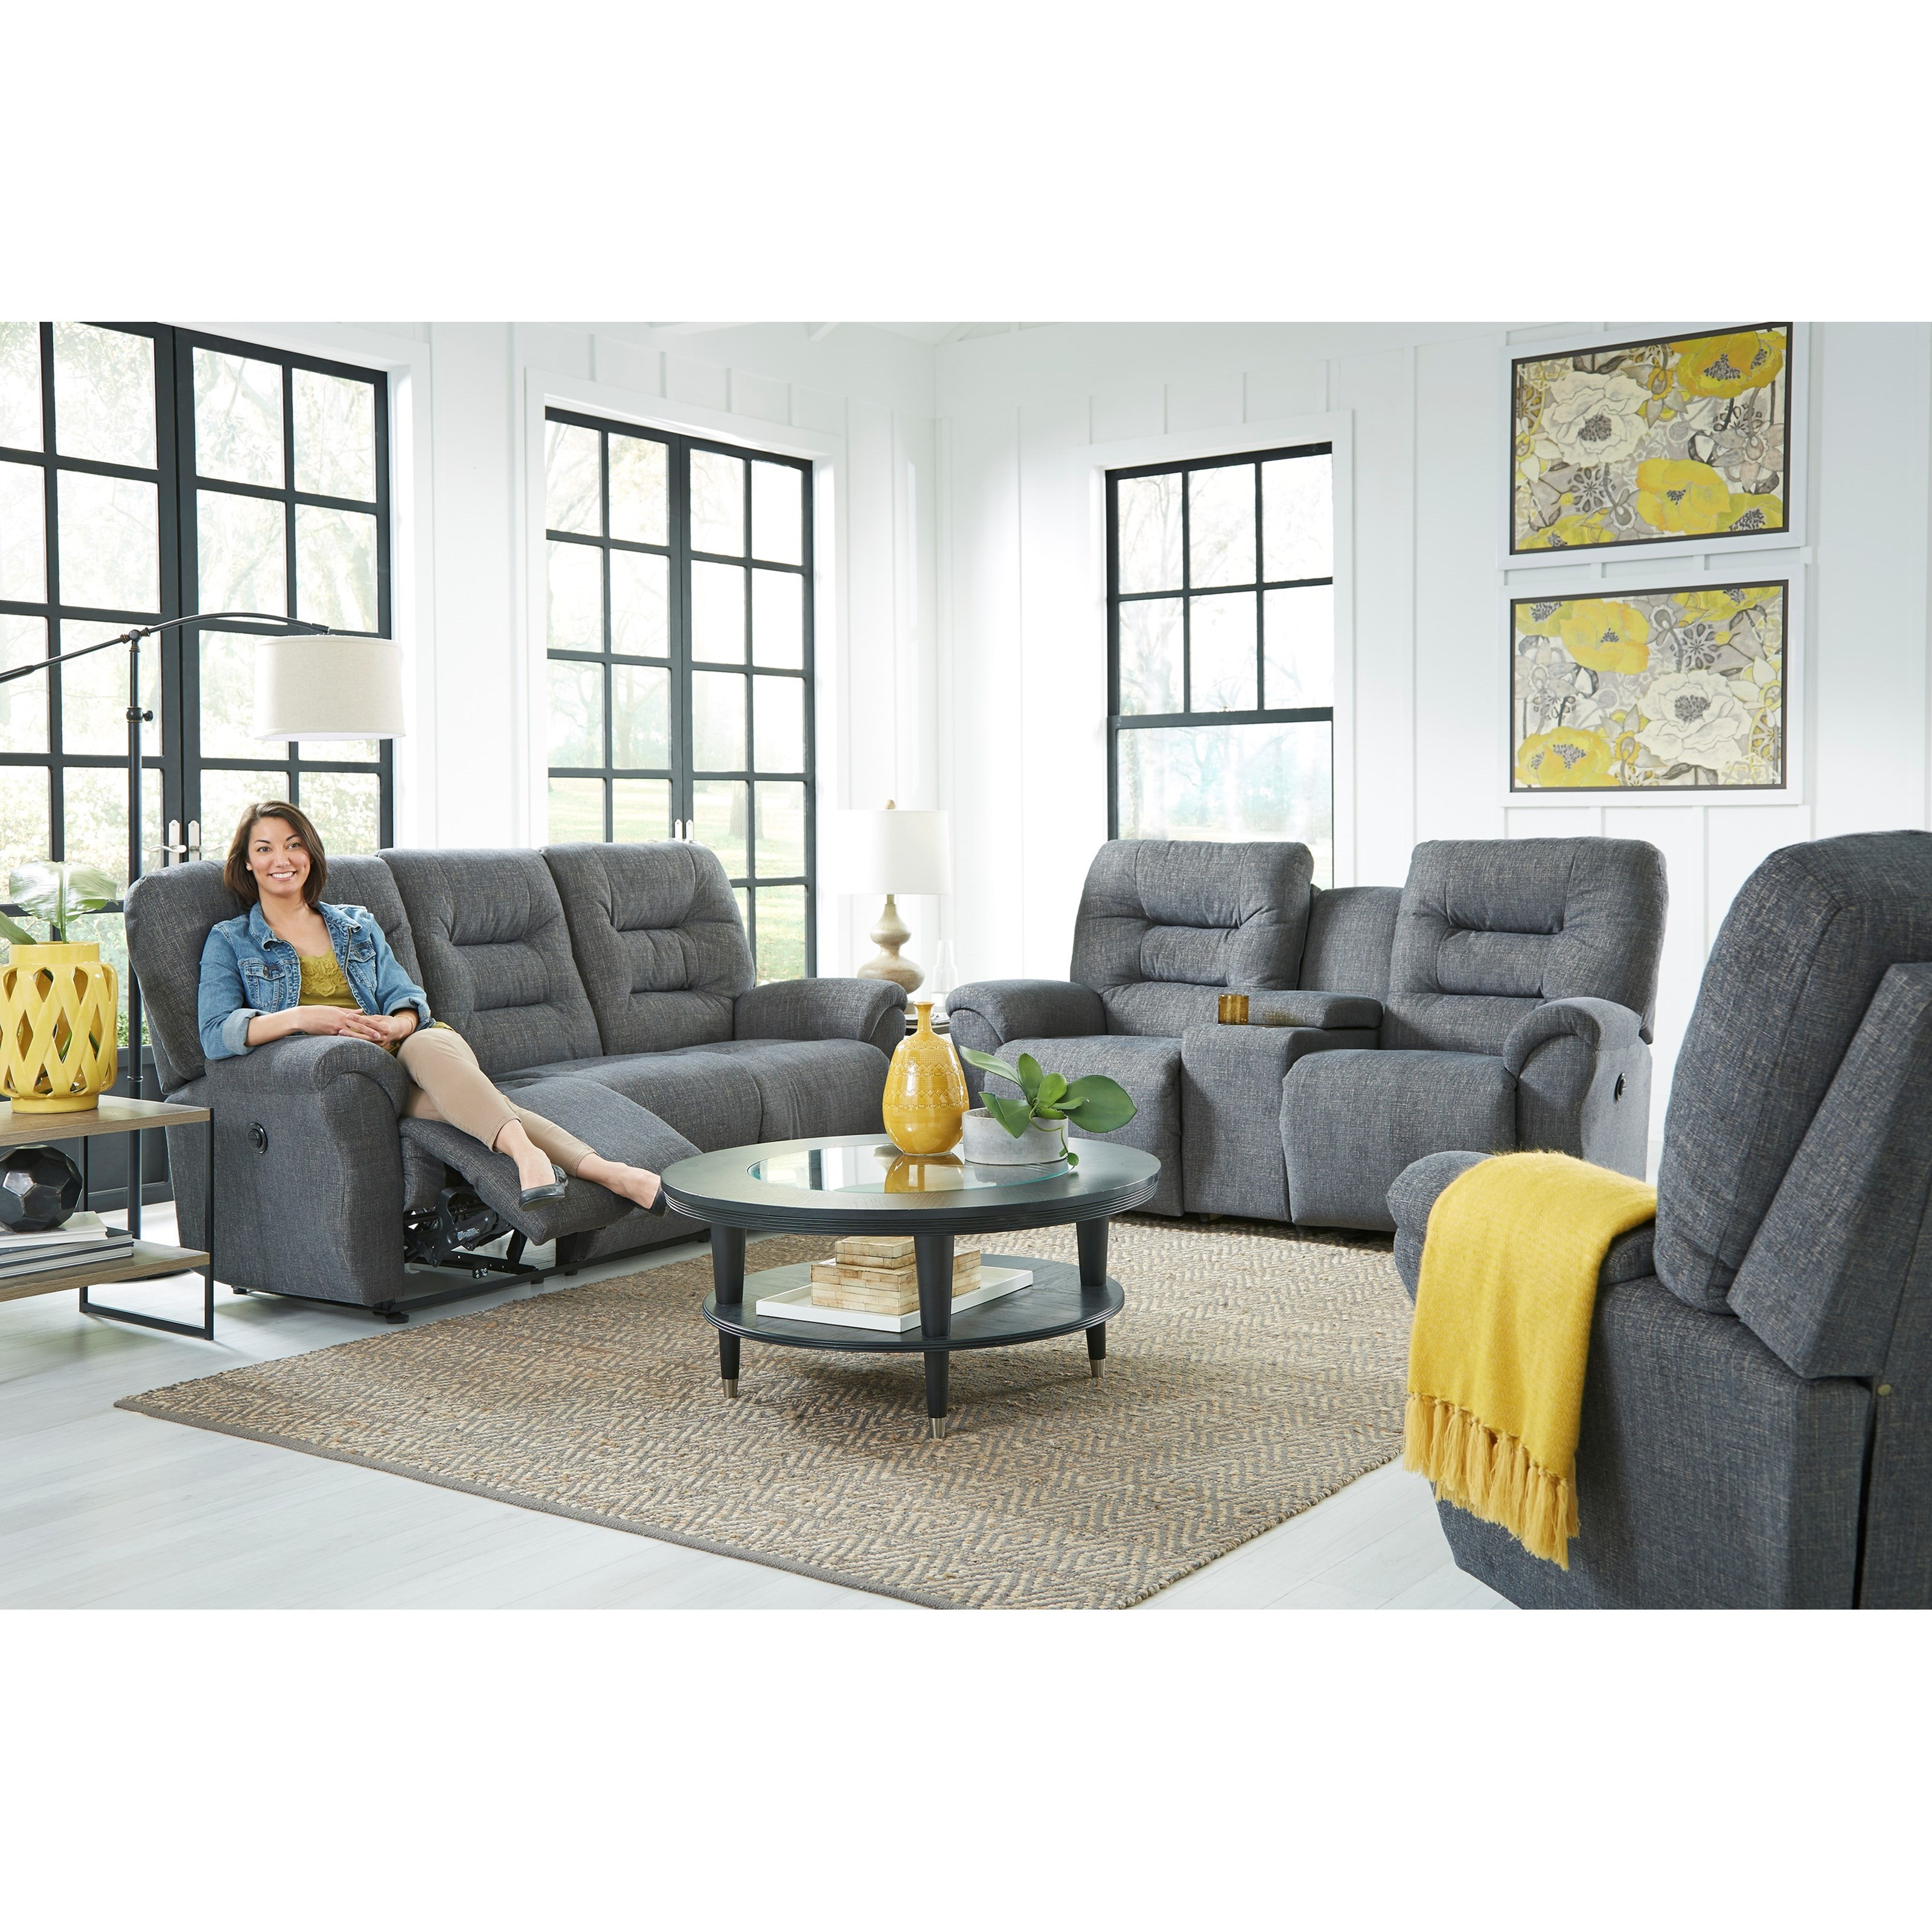 Unity Reclining Living Room Group by Best Home Furnishings at Wilcox Furniture